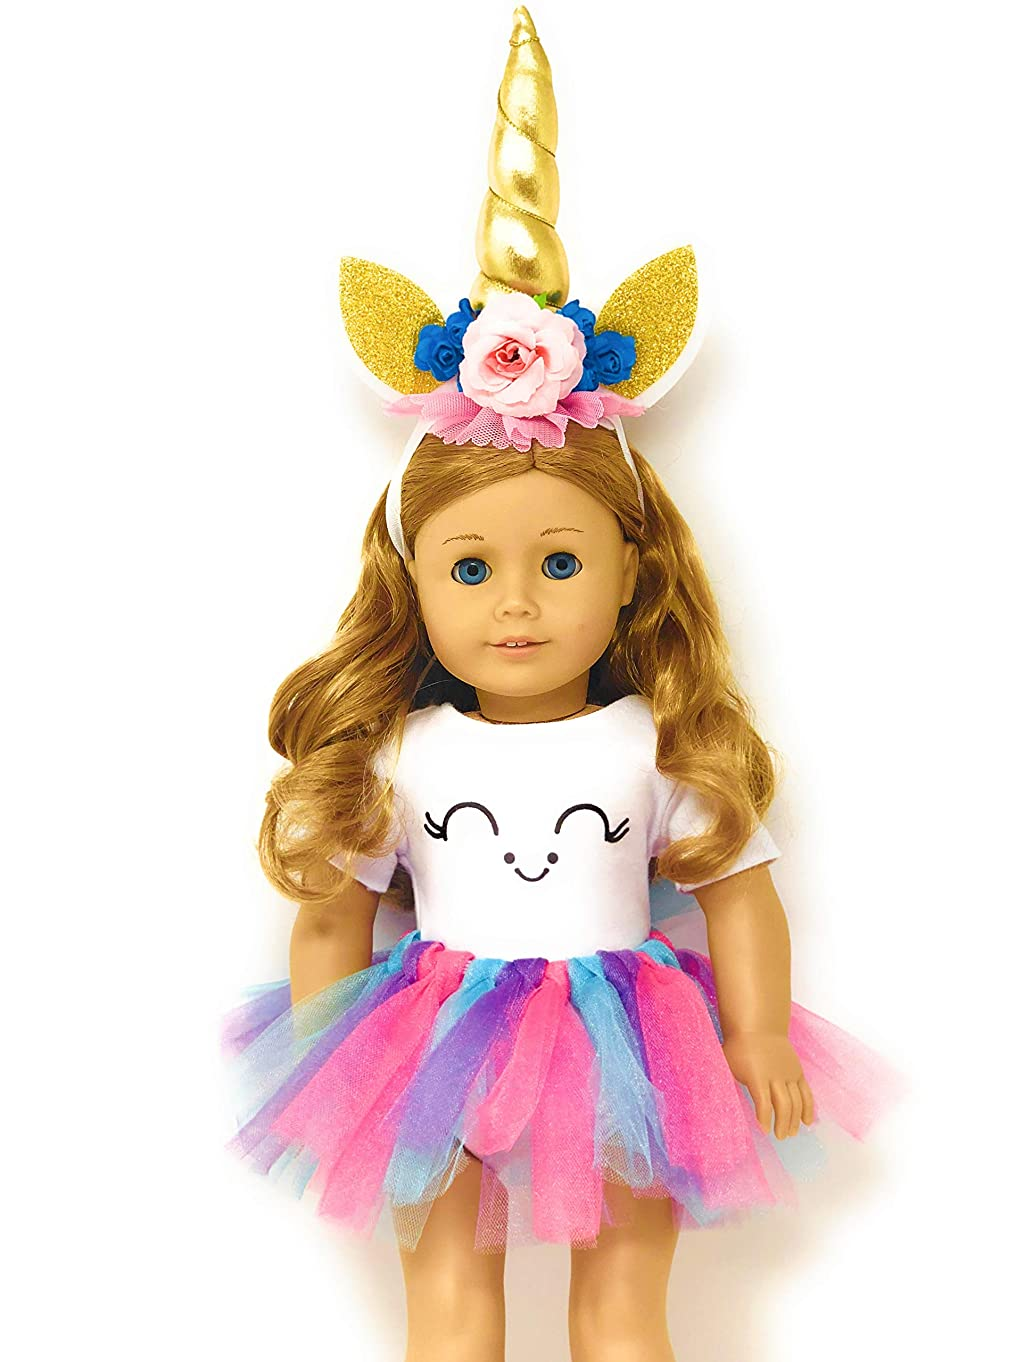 Genius Dolls Unicorn Clothes, Headband, Tutu -fits all 18 inch dolls like American Girl, Our Generation My Life Adora Gotz   great gift for little and big girls   Accessories, Outfits,Horn and Costume